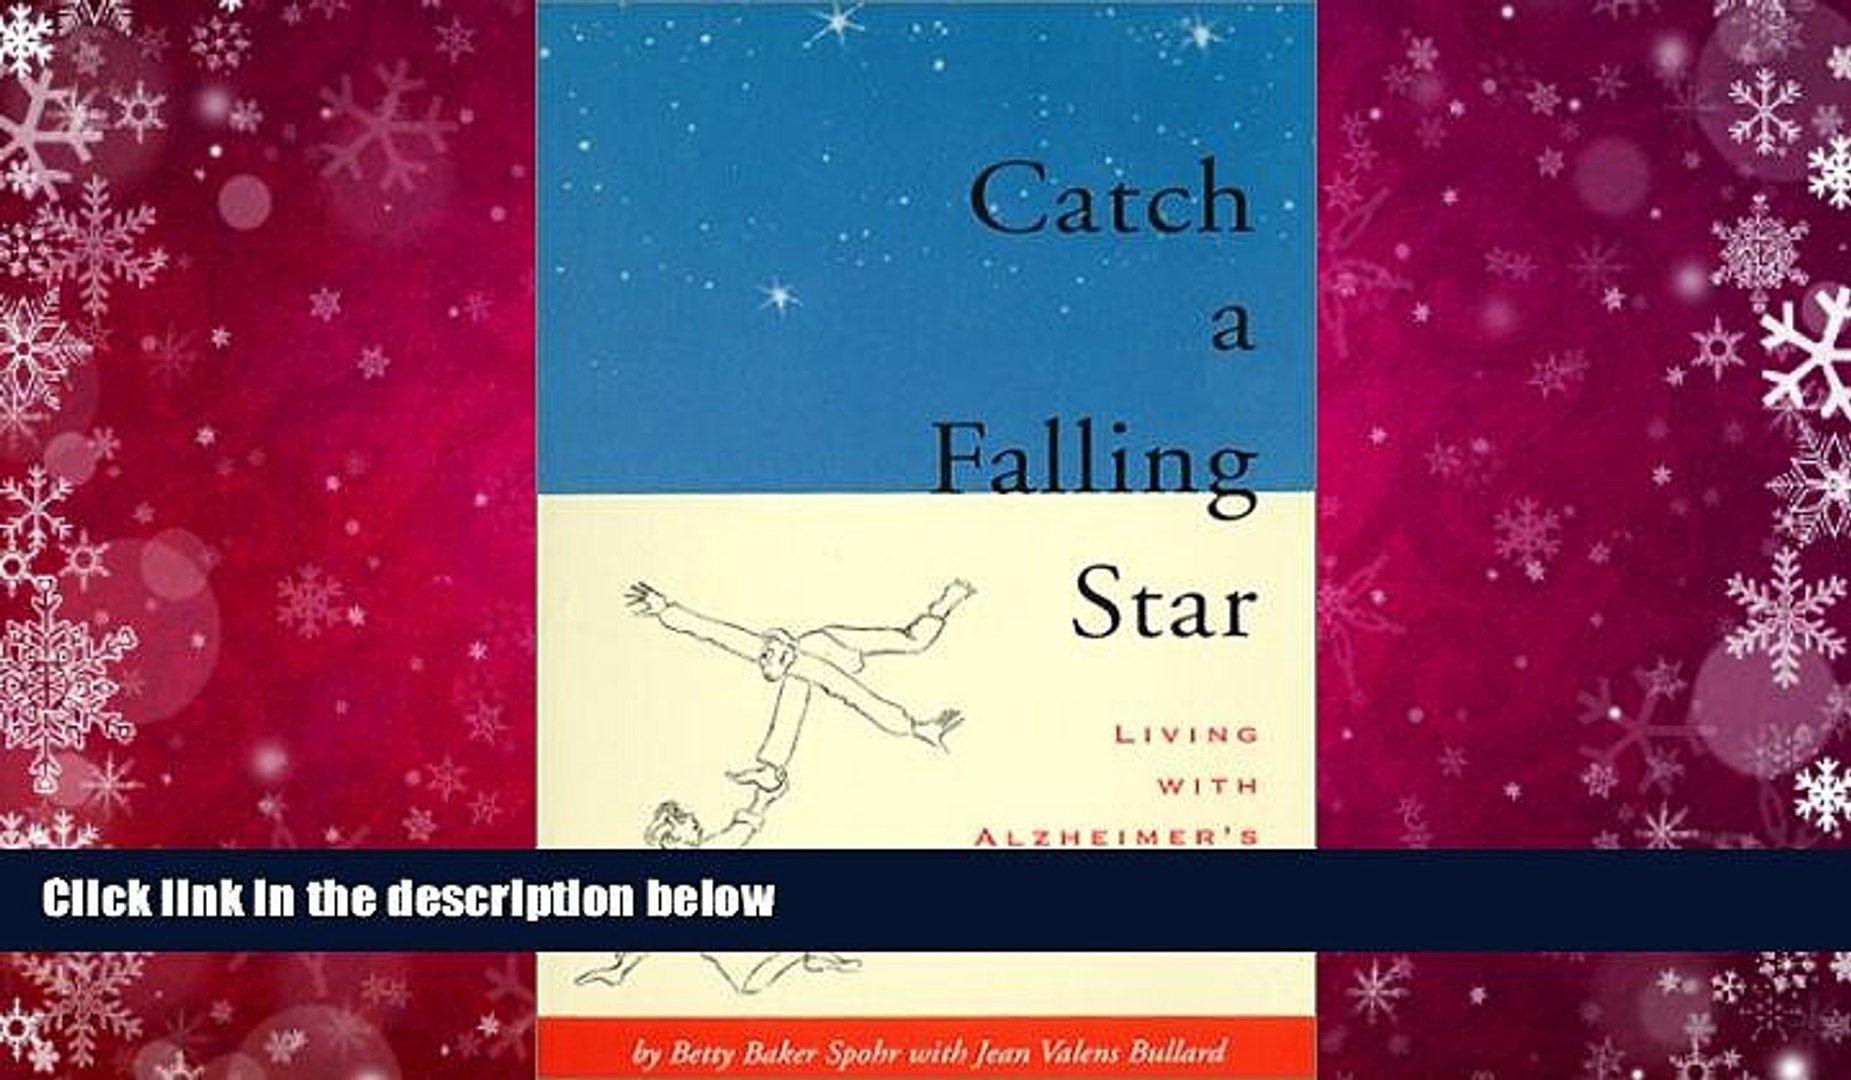 PDF [FREE] DOWNLOAD  Catch a Falling Star: Living With Alzheimer s Betty Baker Spohr BOOK ONLINE